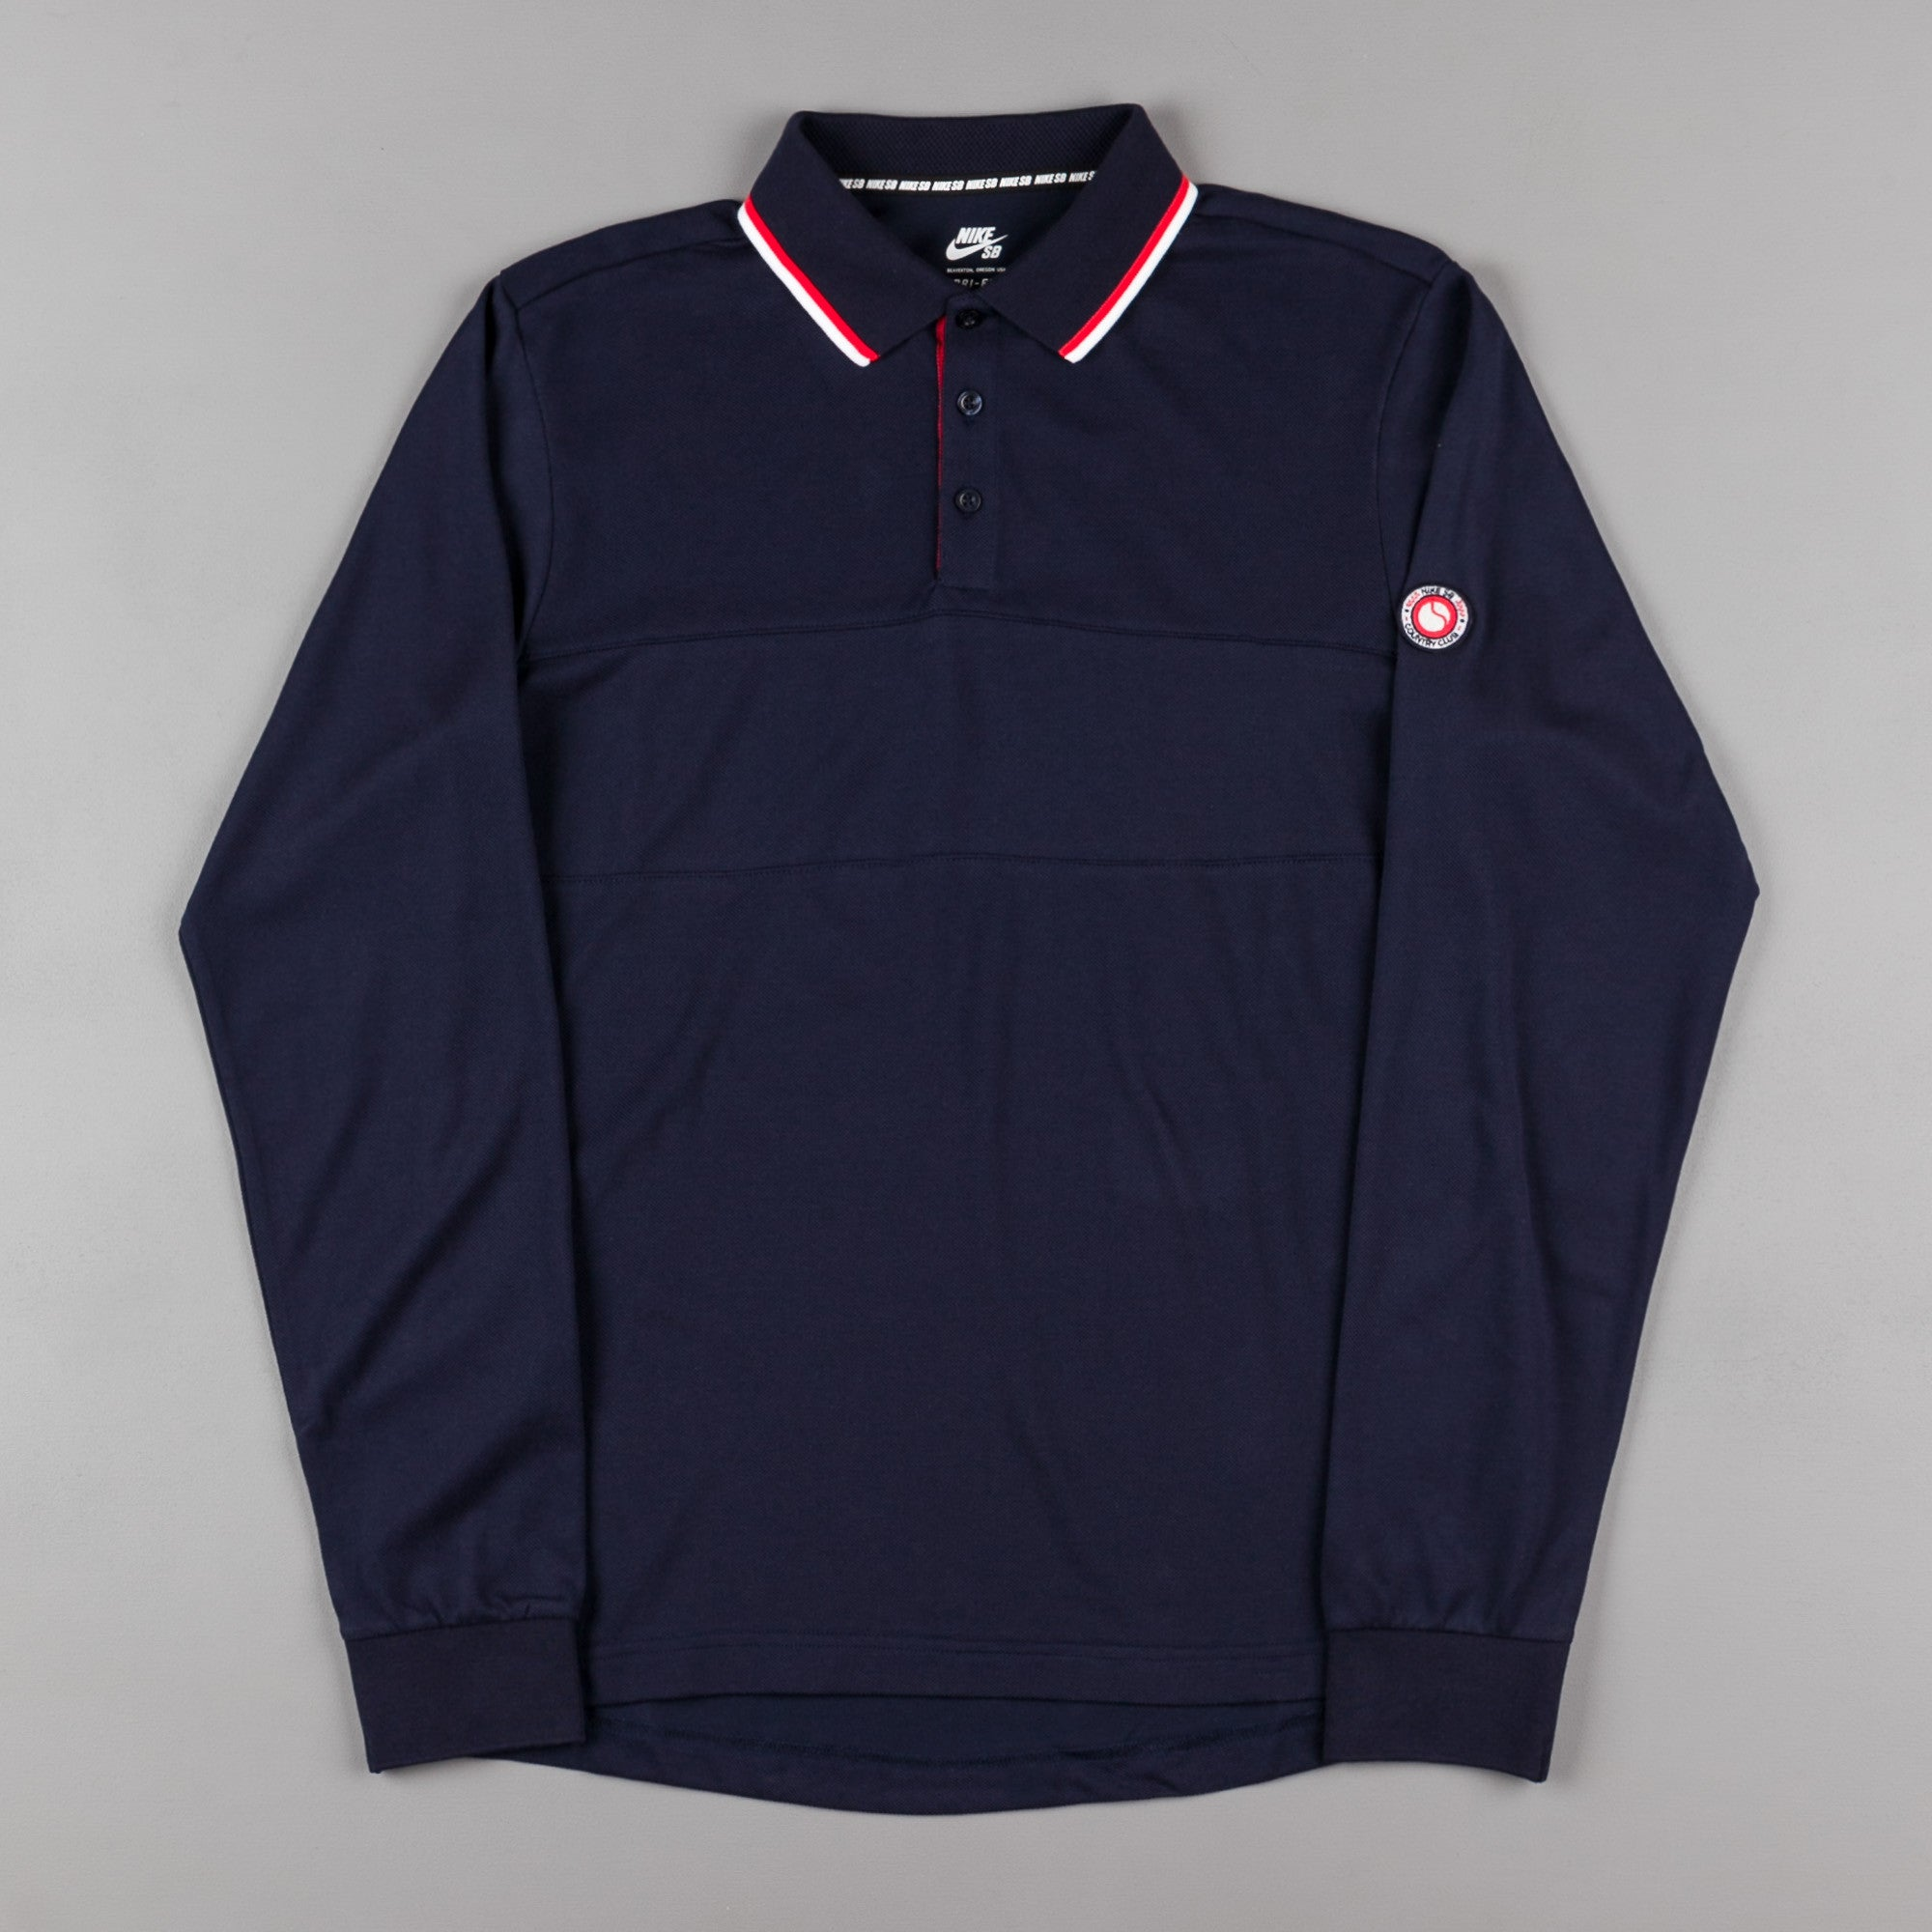 Nike SB x 917 Long Sleeve Polo Shirt - Obsidian